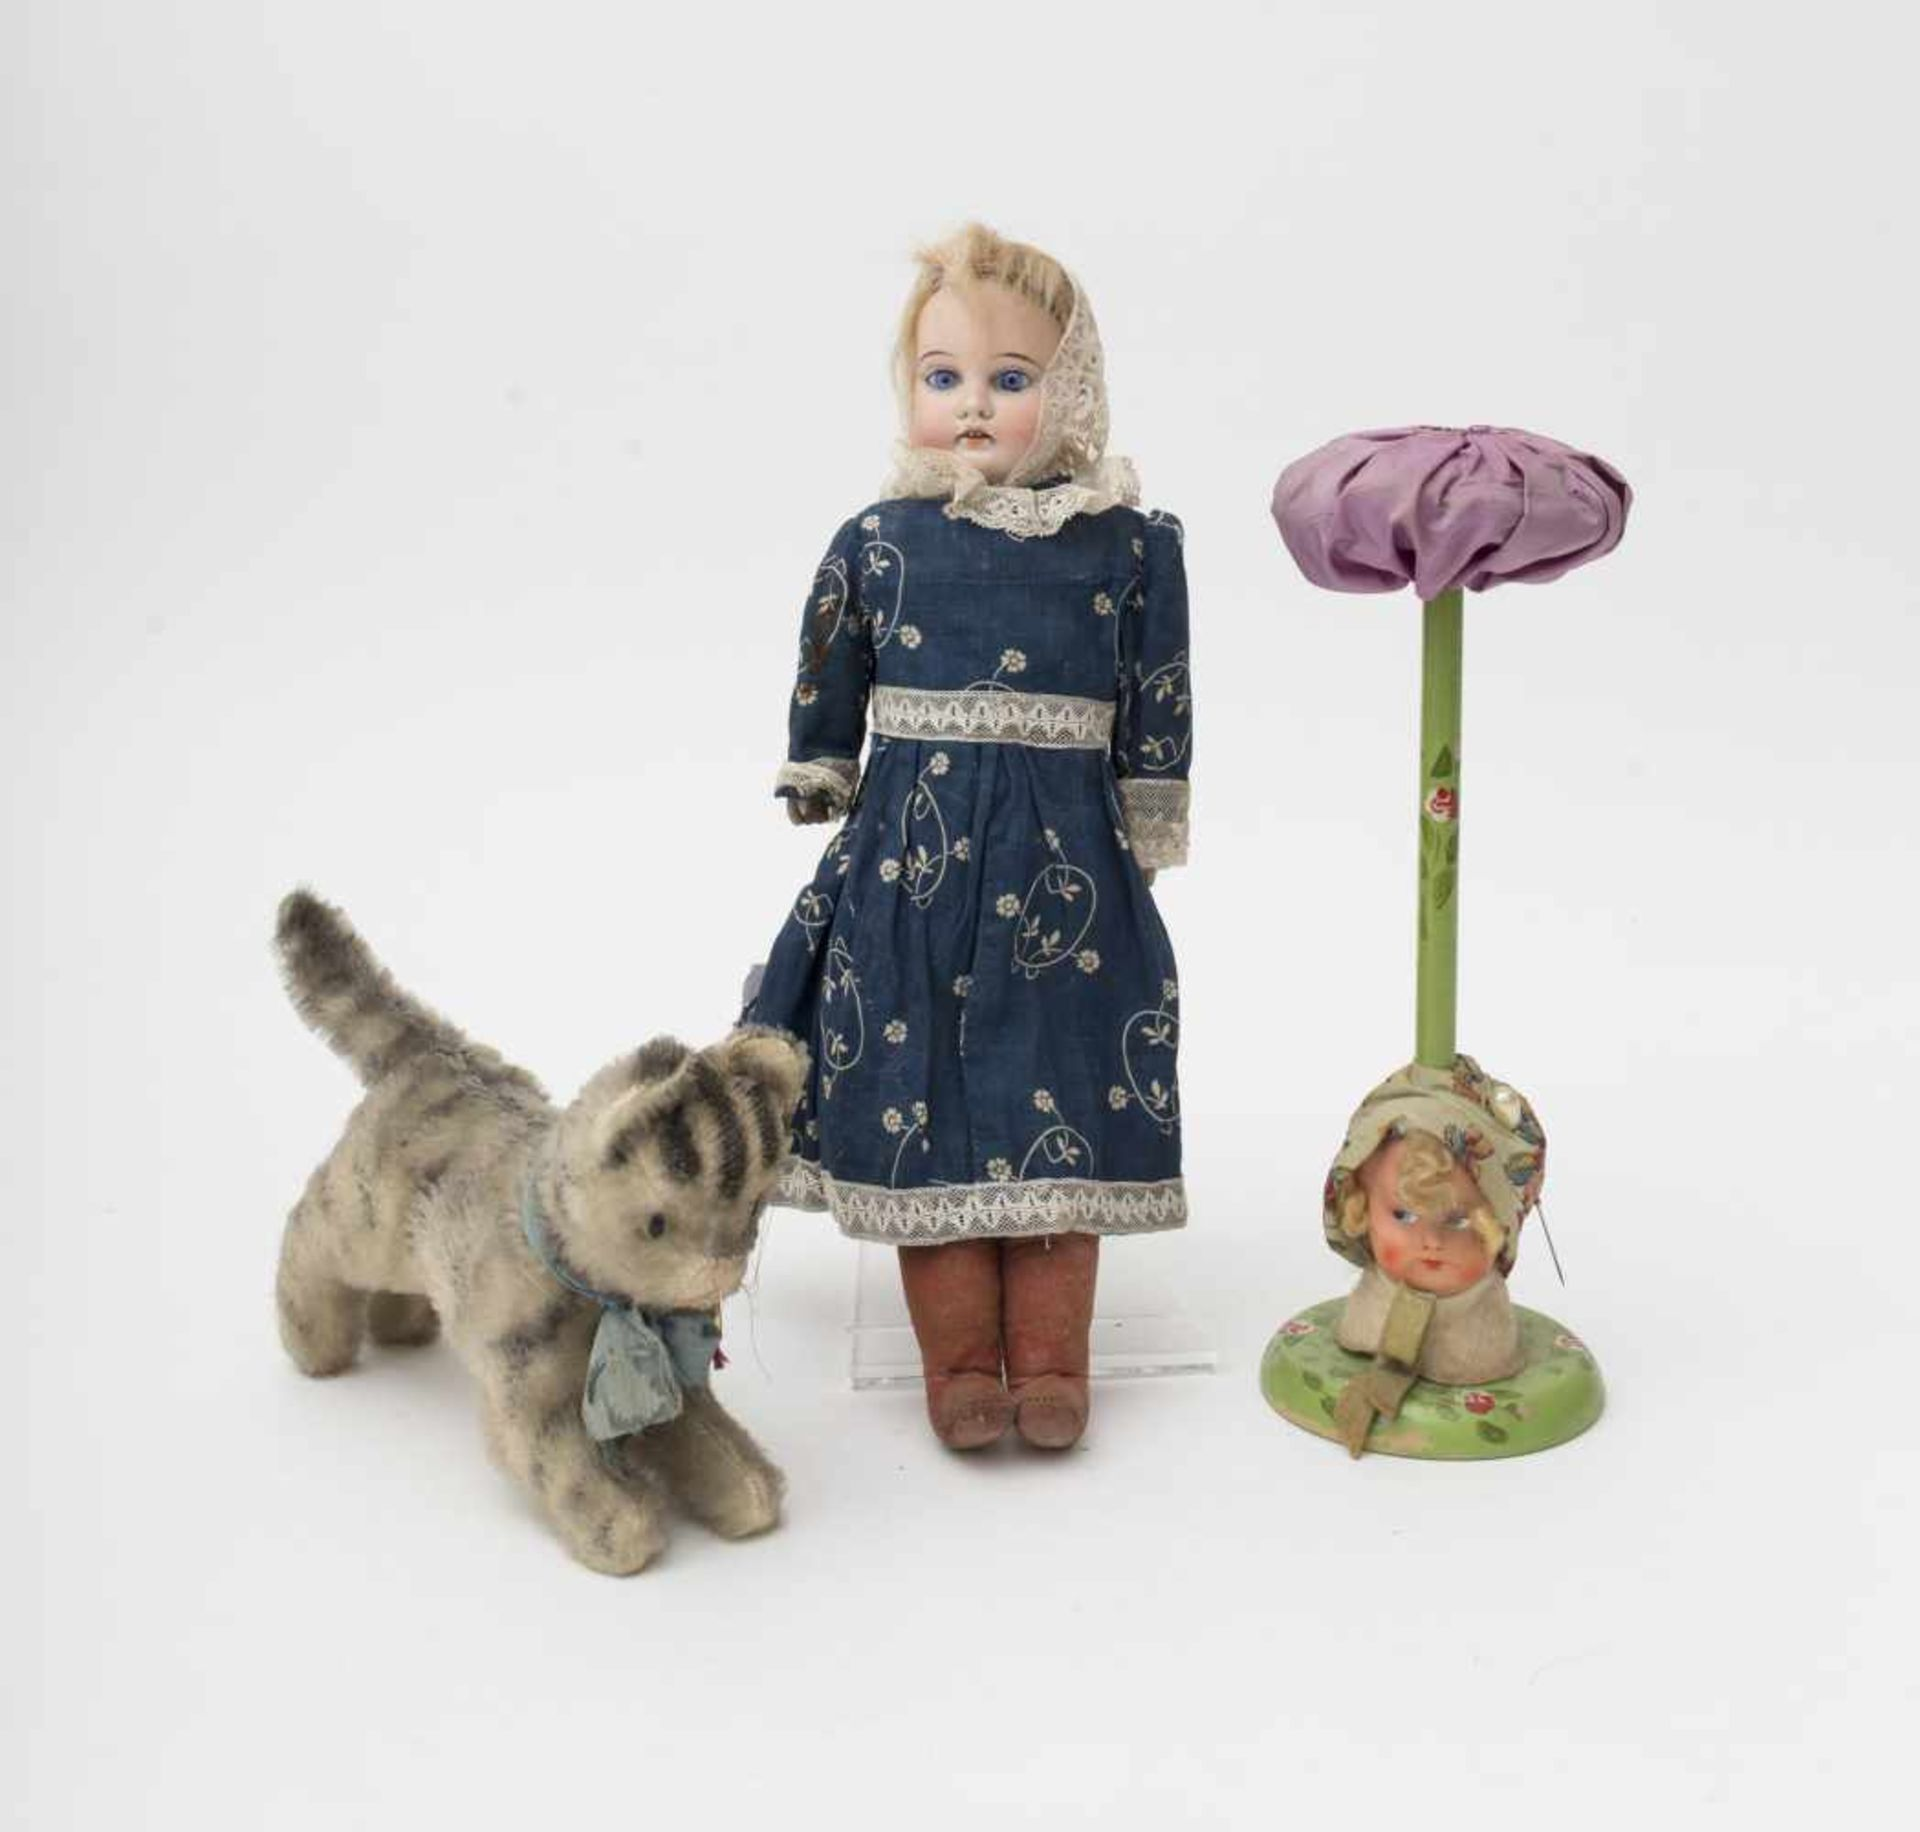 German doll With biscuit head, open mouth, fixed blue eyes, kidskin body. Included is a little